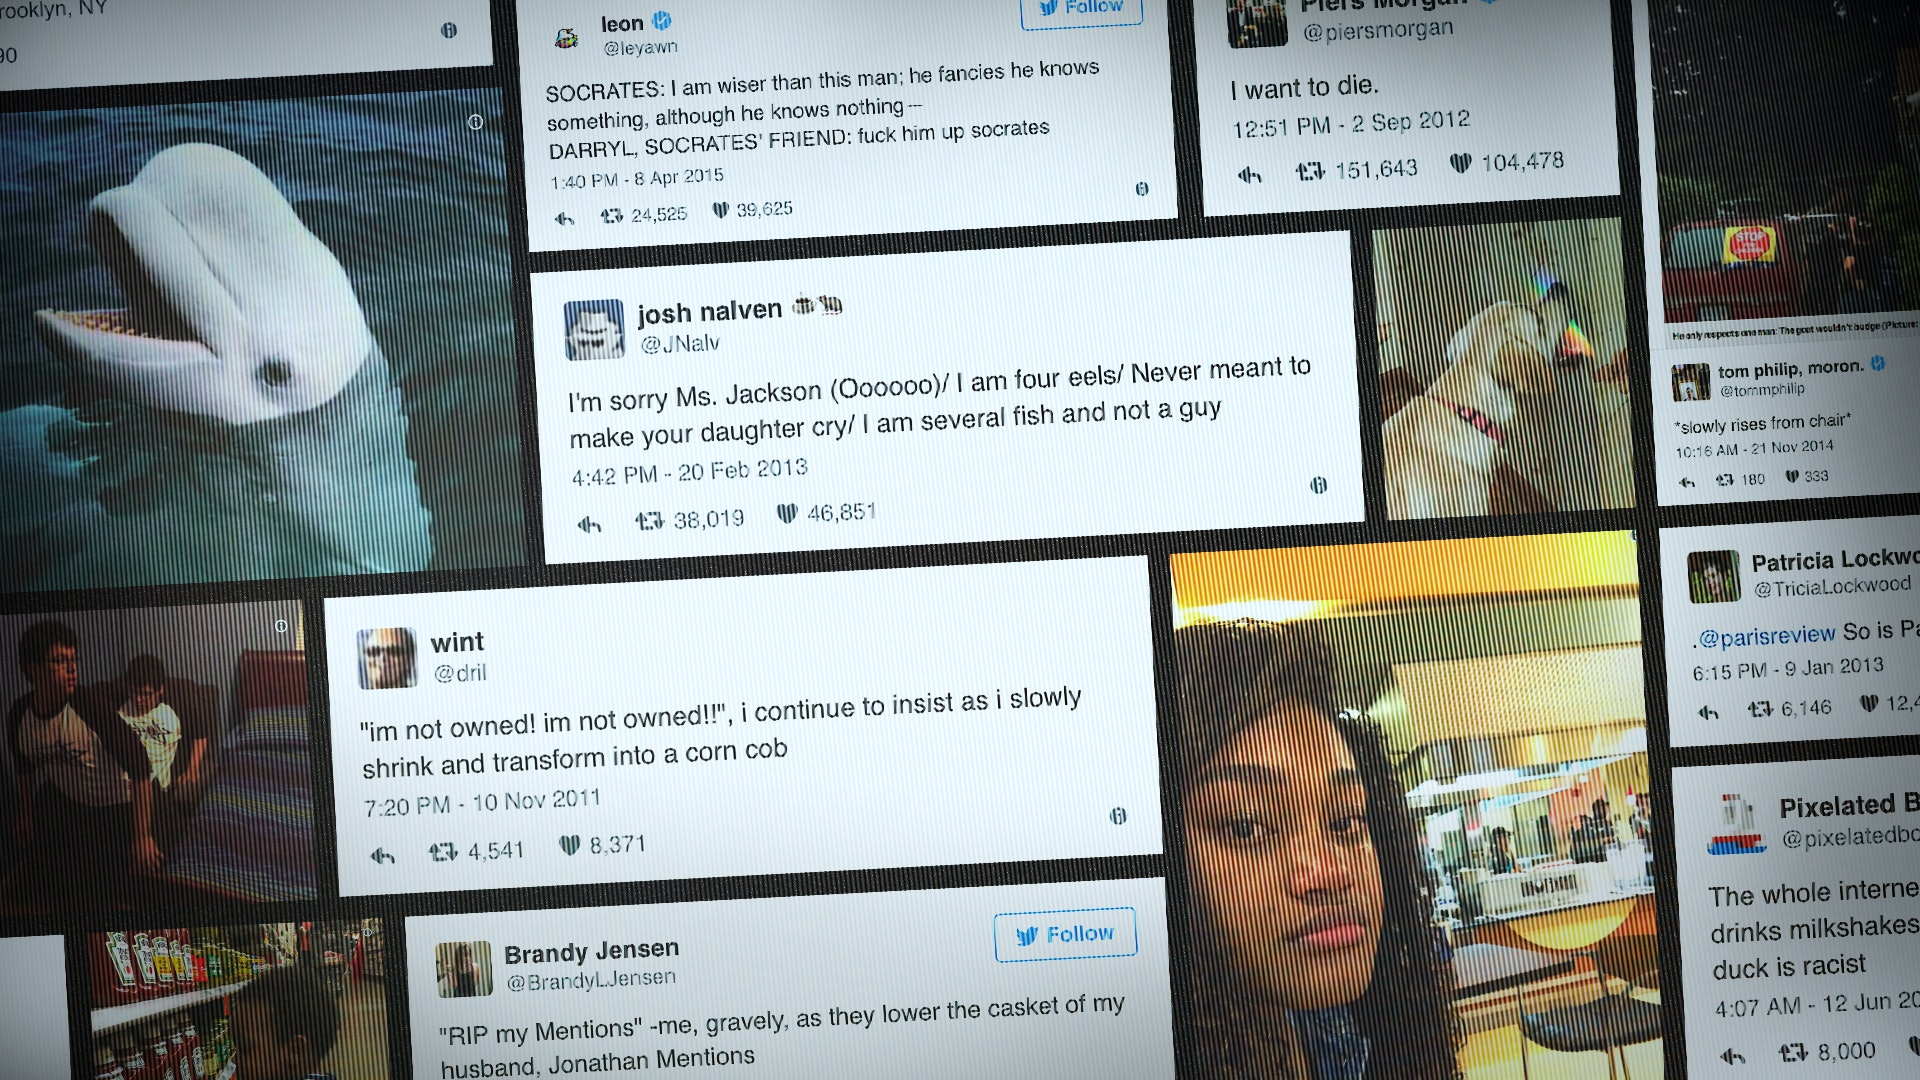 d8ba81273 101 Canonical Tweets: The best, most influential tweets in Twitter history